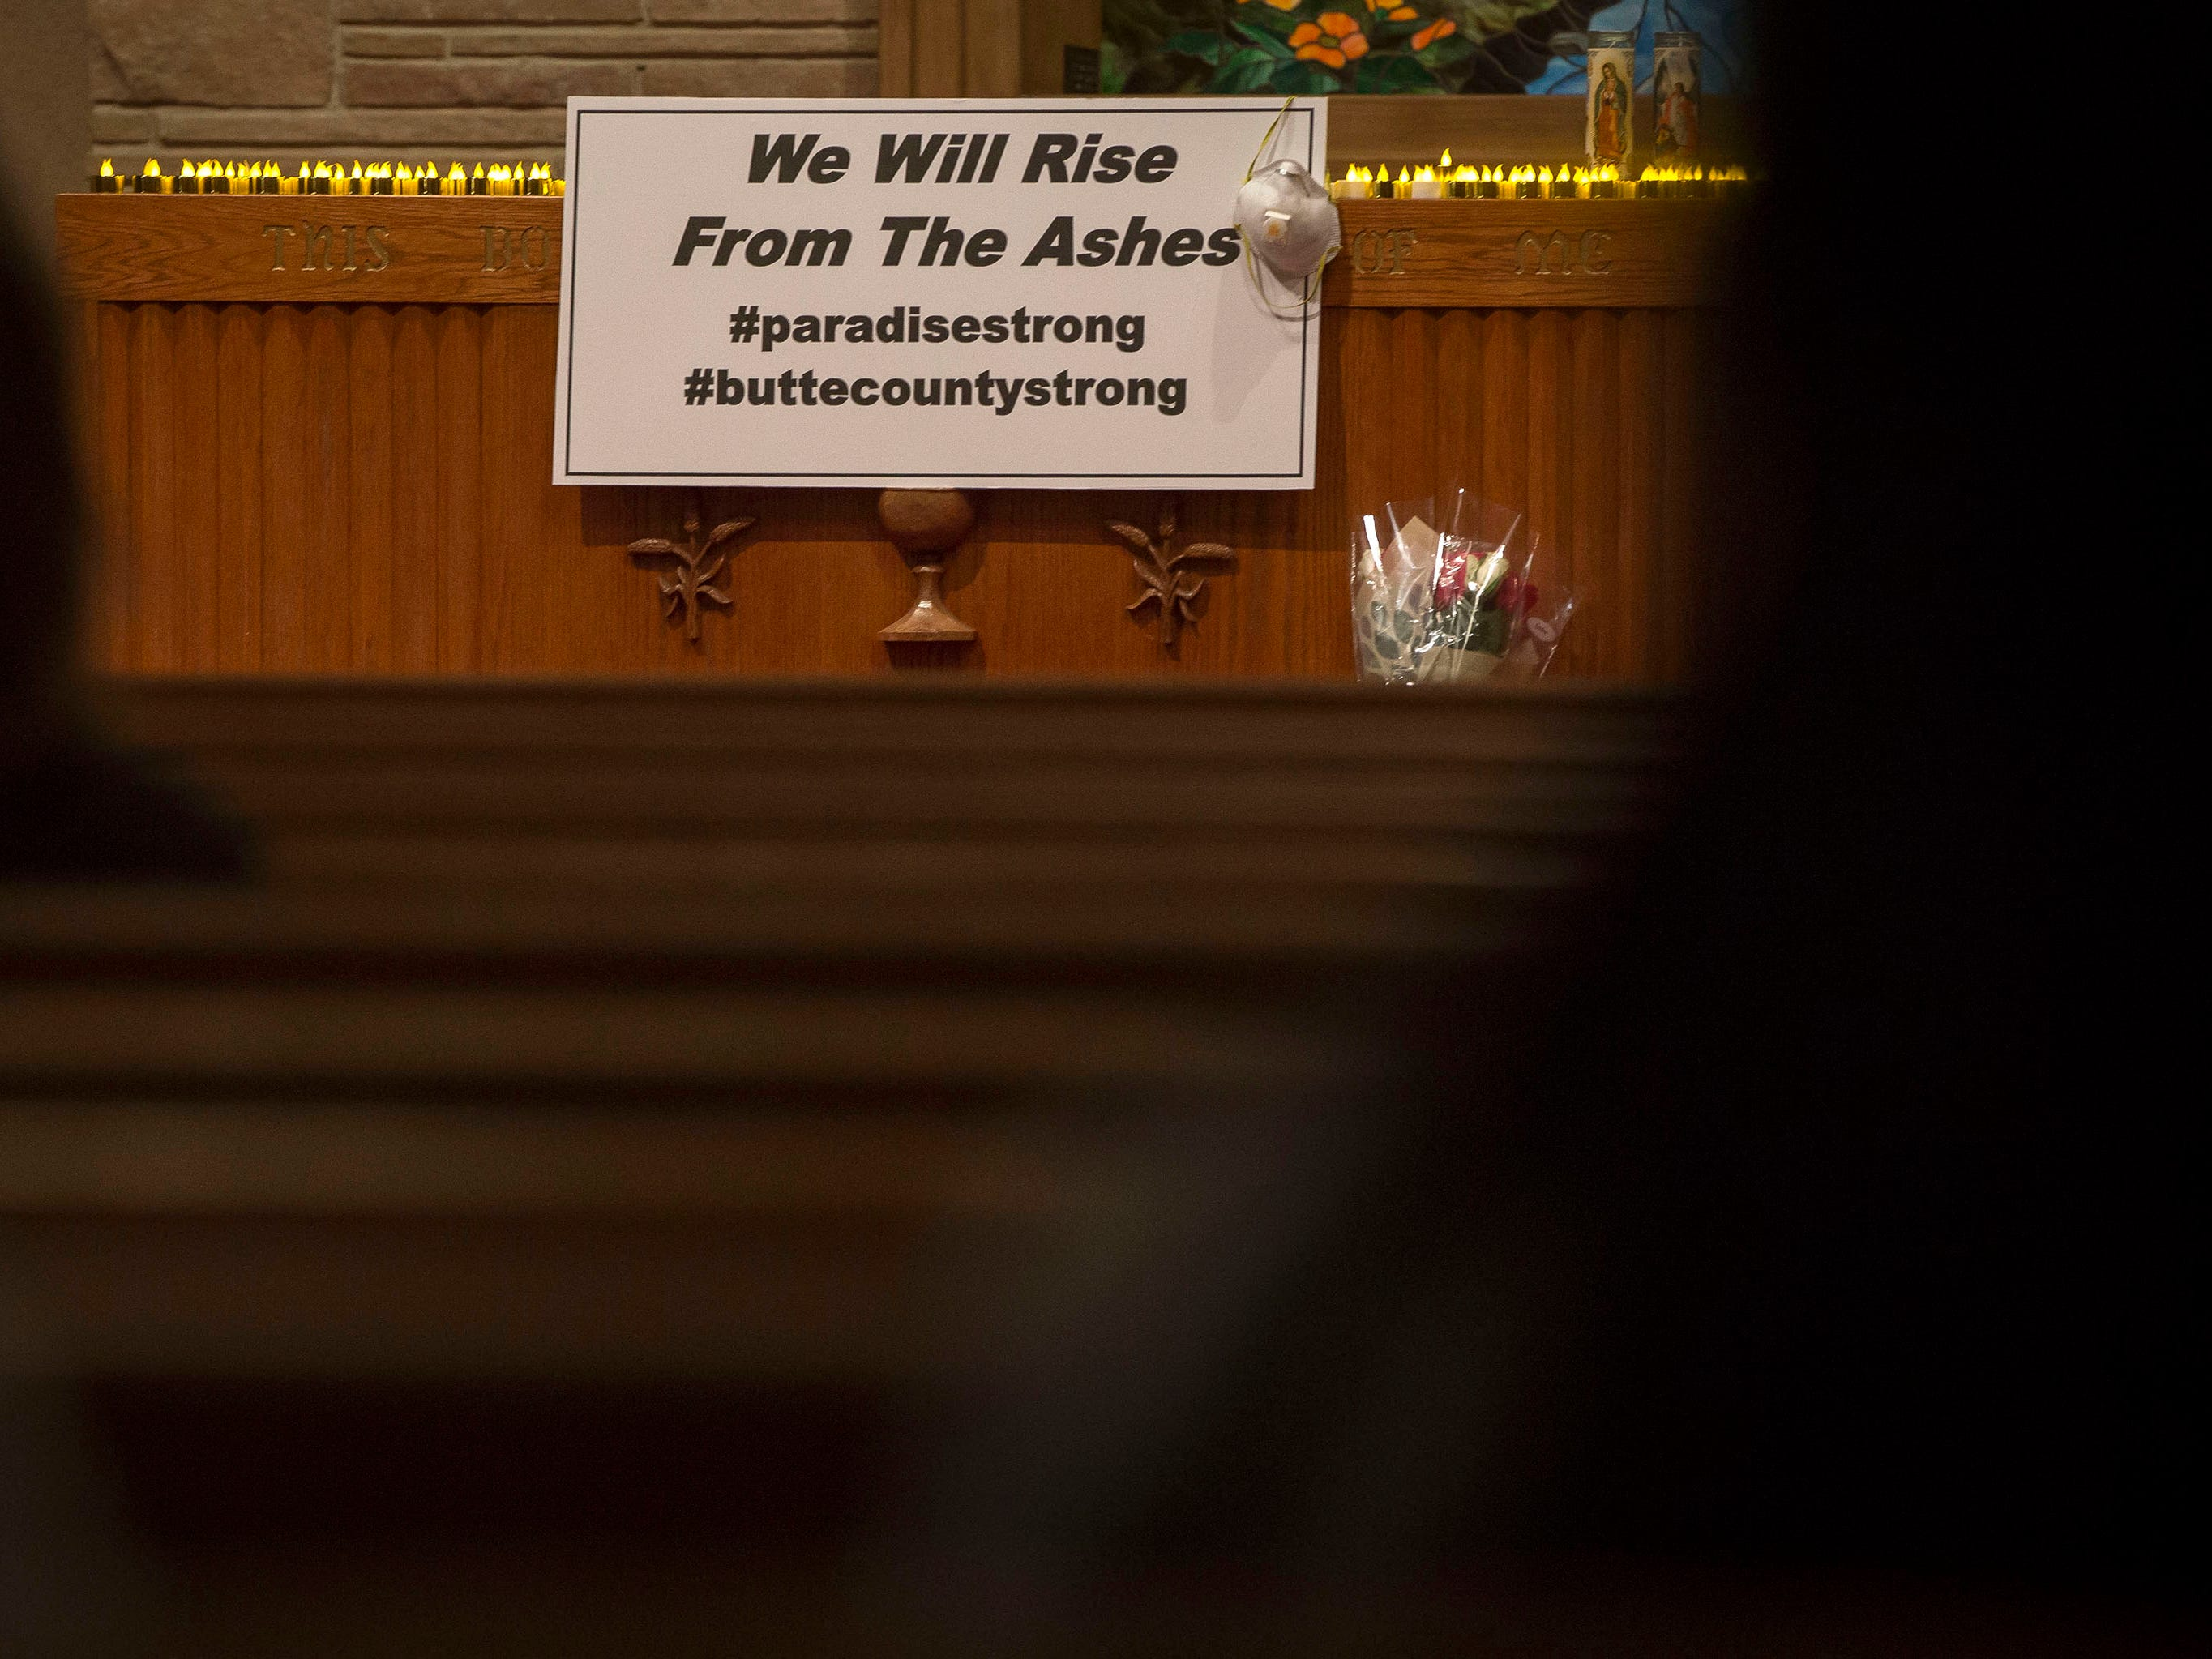 A sign is displayed during a candlelight vigil and service at the First Christian Church of Chico, Sunday, Nov. 18, 2018, in Chico, Calif.